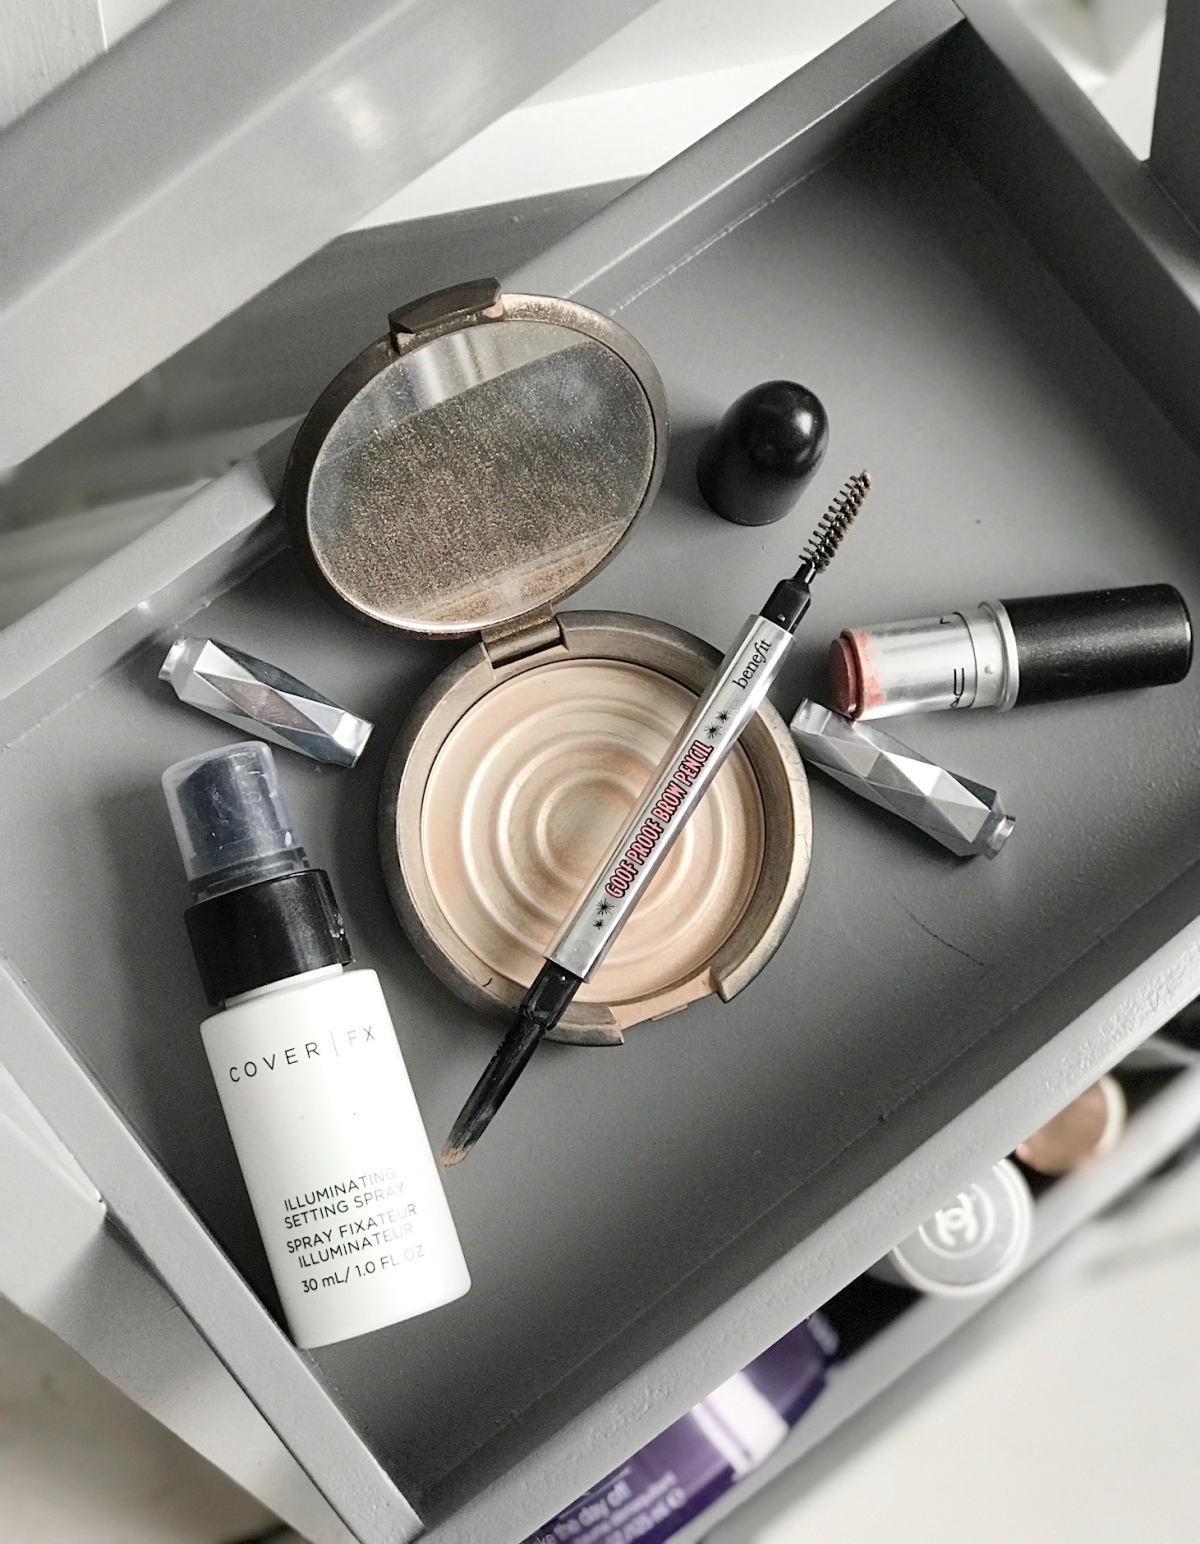 Empties - Becca Shimmering Skin Perfector in Opal